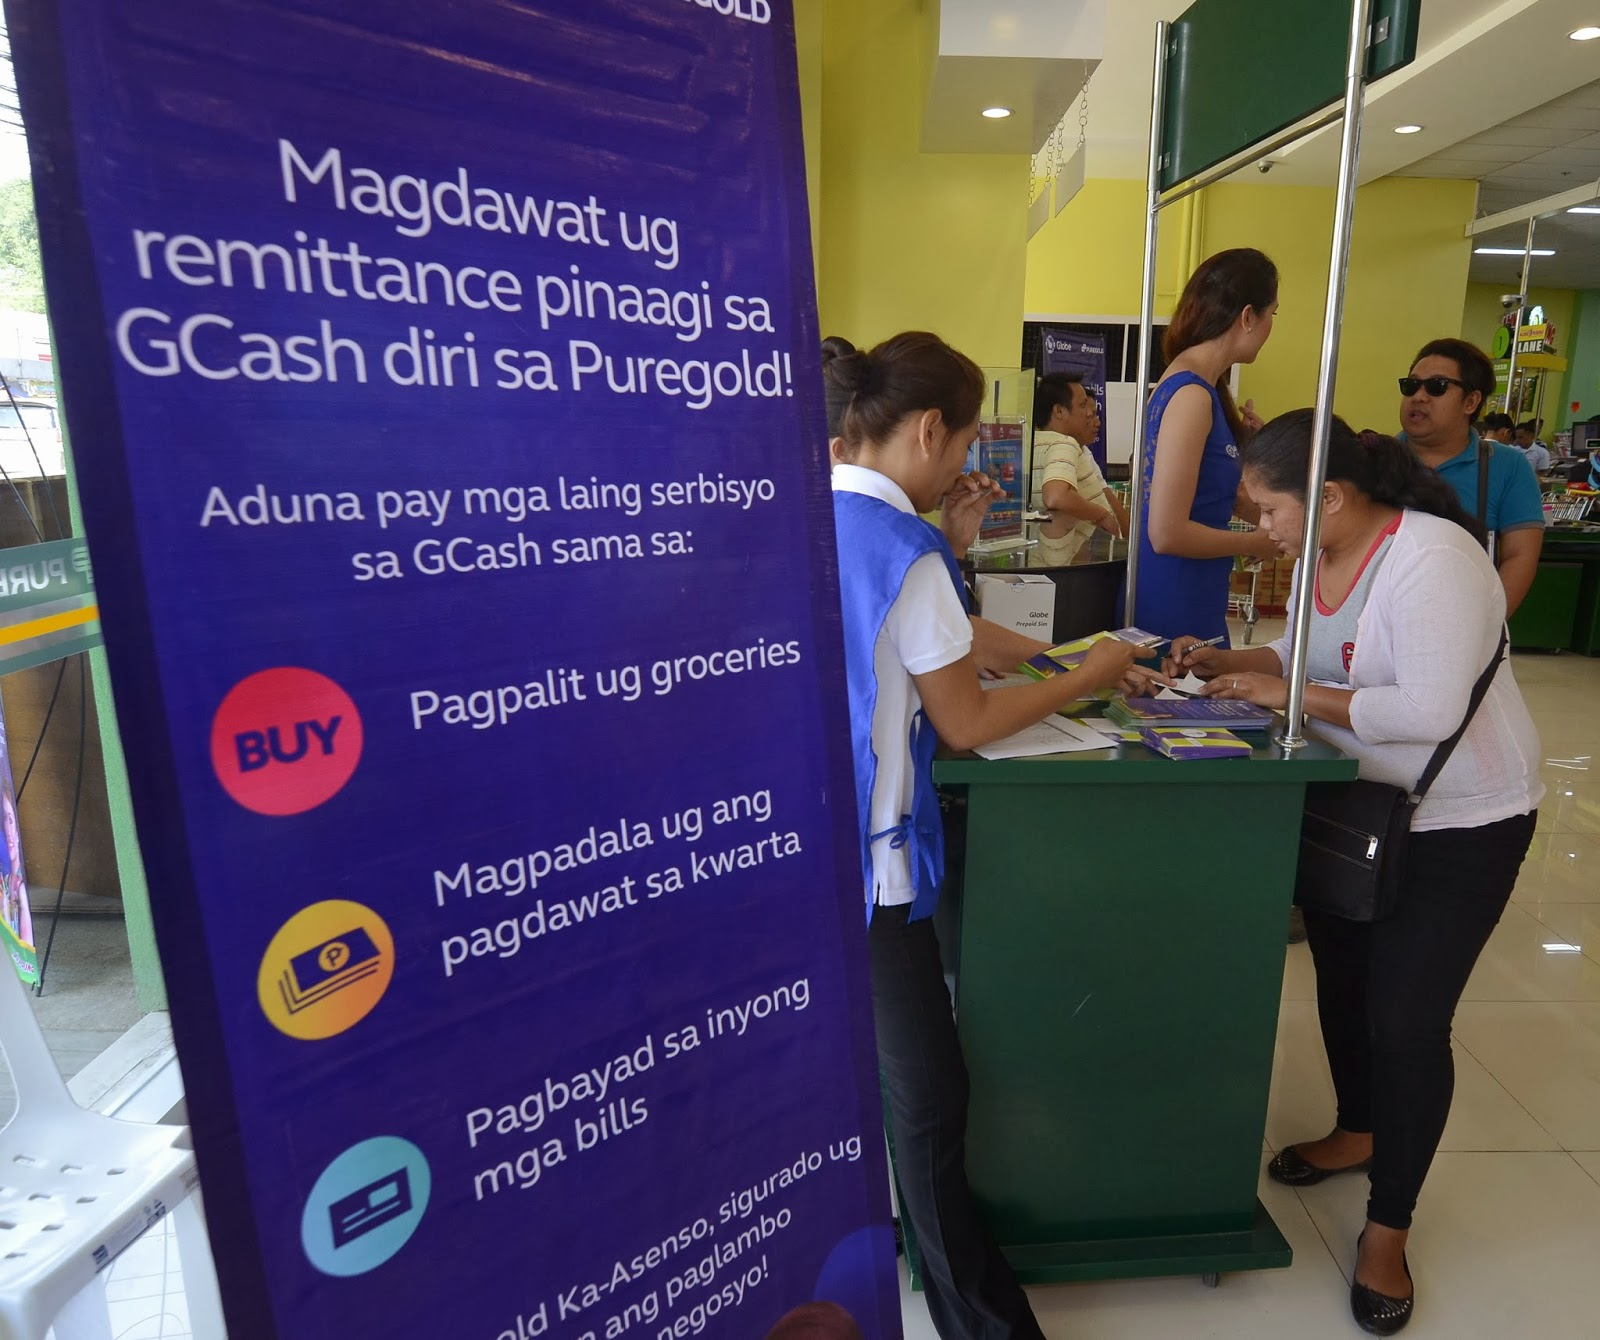 GCash services now offered in Puregold Digos, Tagum, and